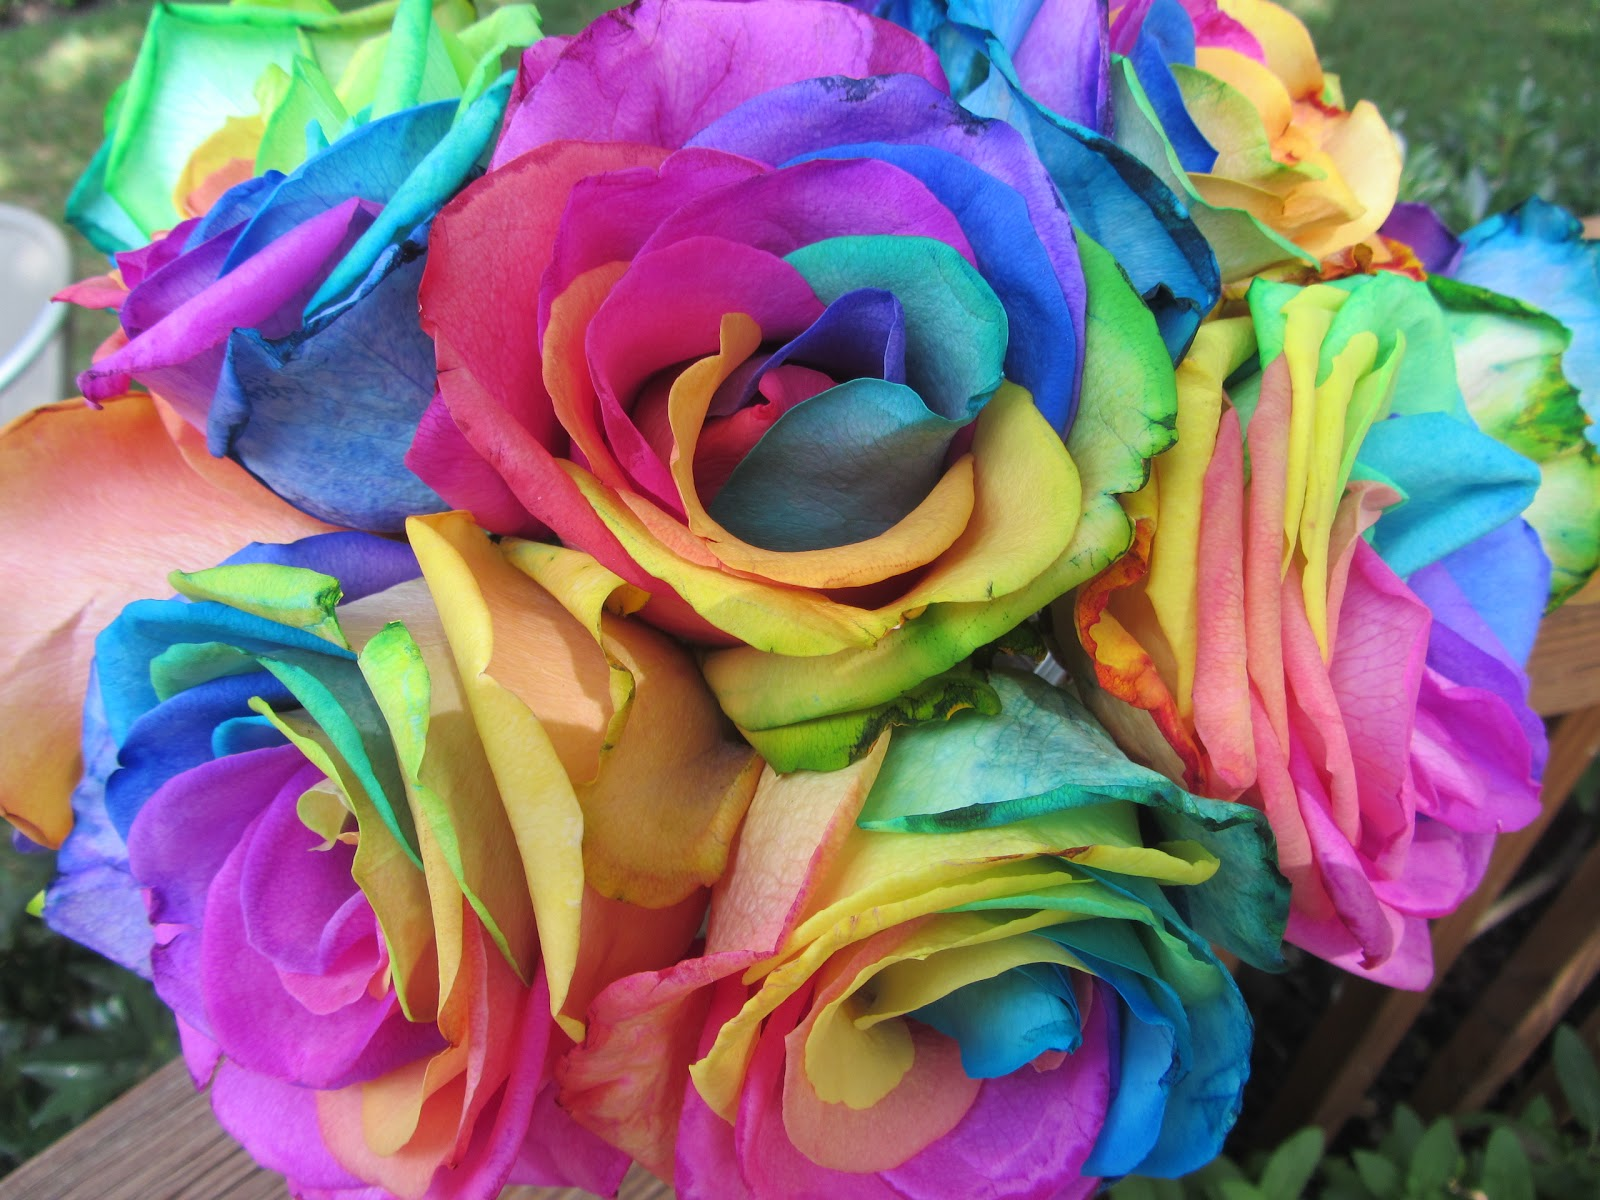 Carries Design Musings The Rainbow Rose